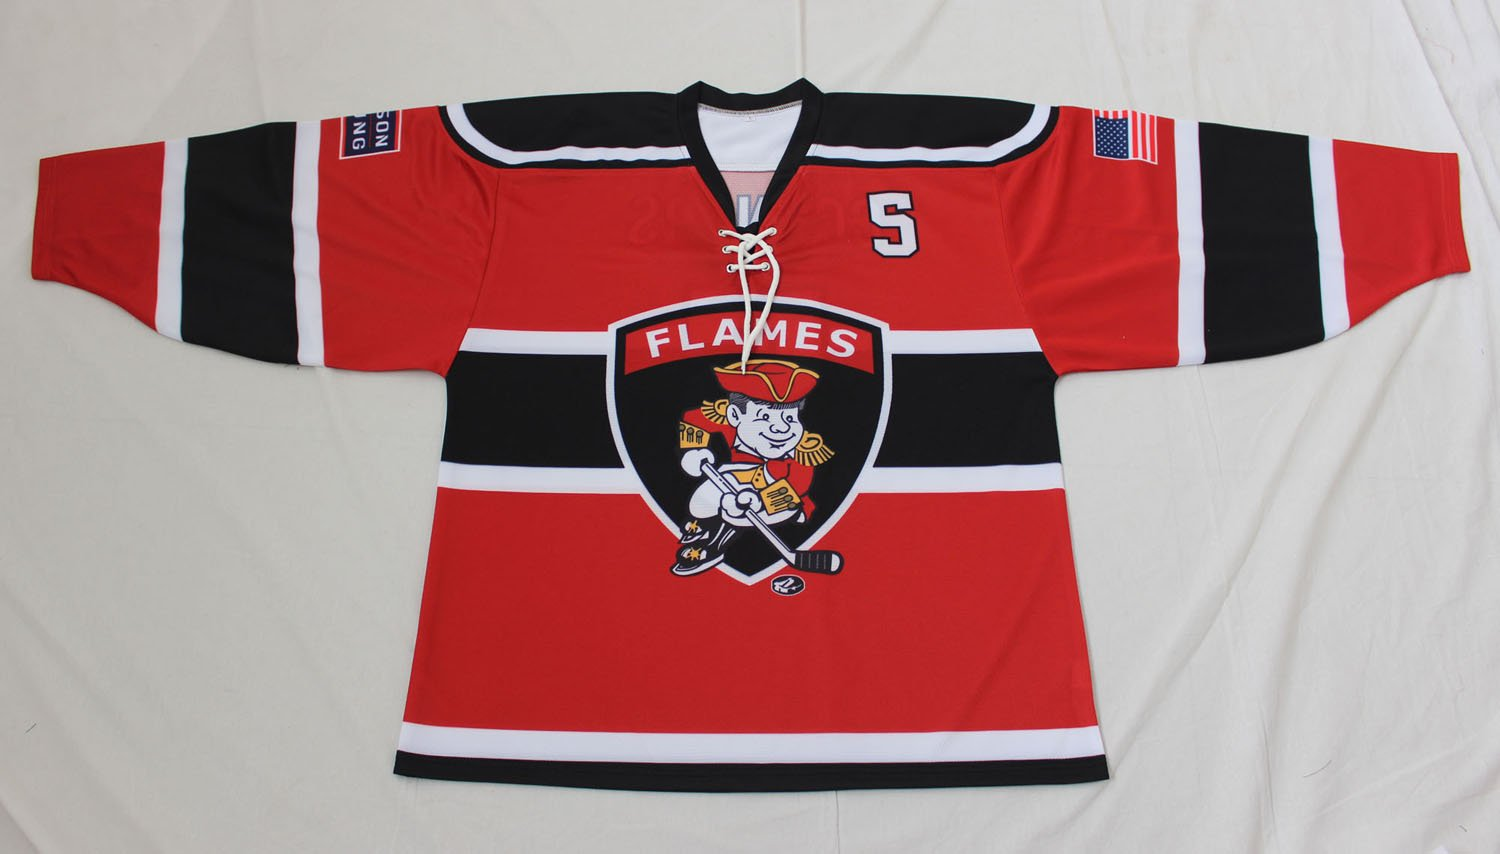 c5999846bff custom sublimation ice hockey jerseys - Hoysports.com